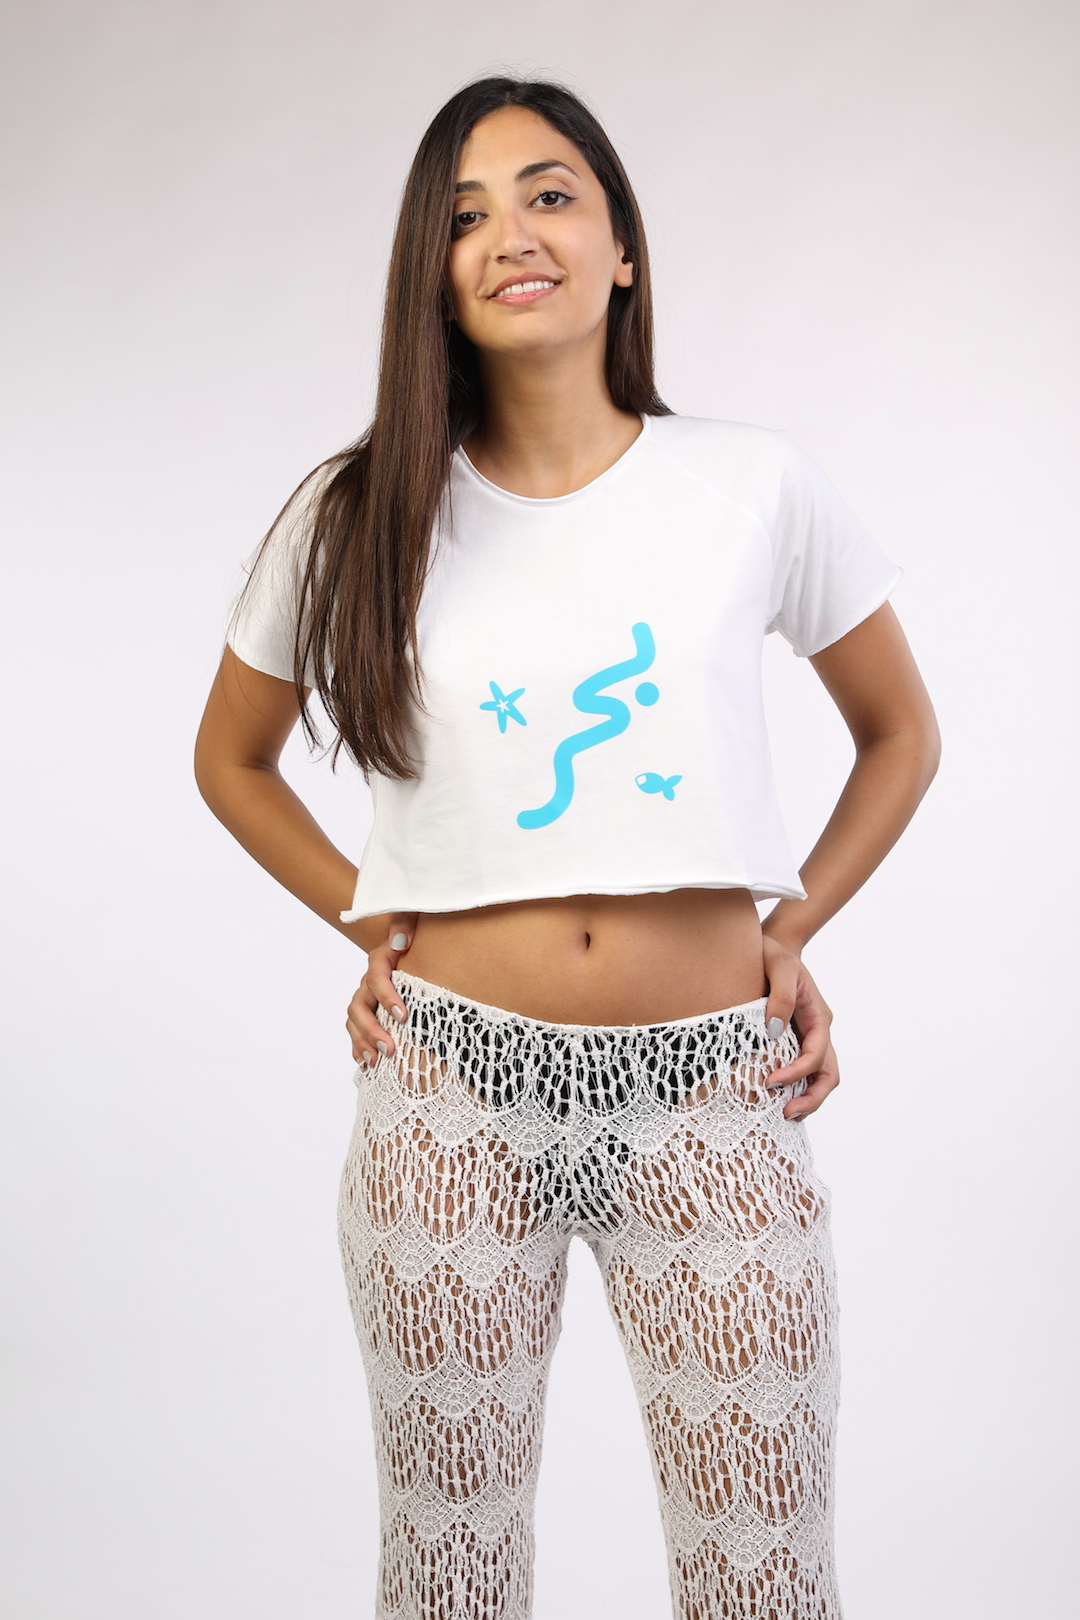 c81348328fa White Crop Top With Blue Baher Print - Lebelik